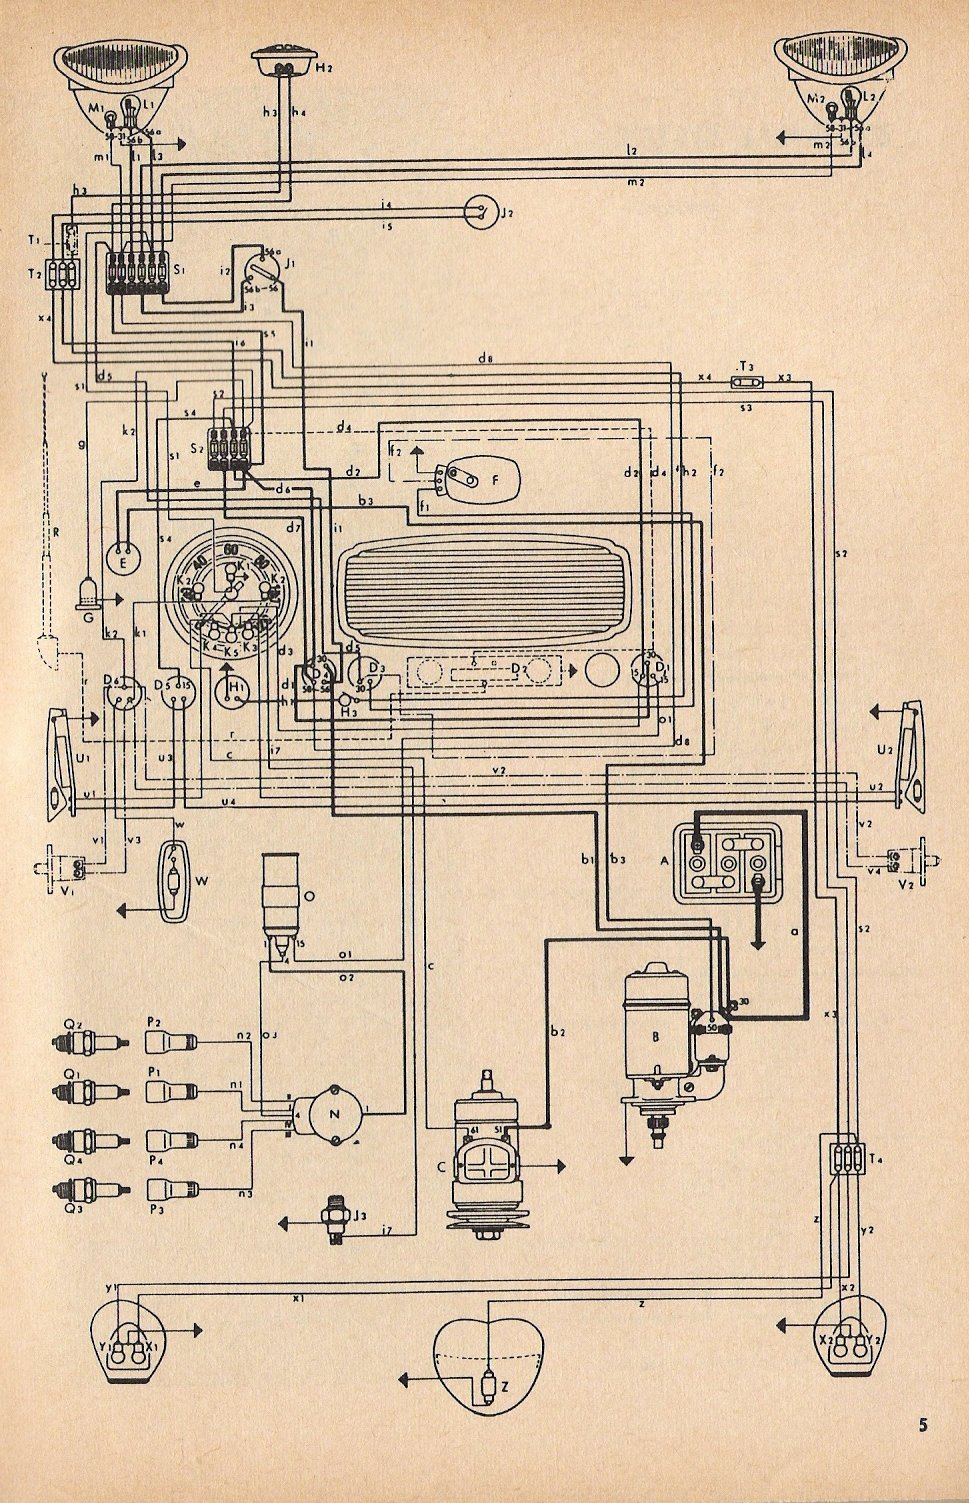 1966 Porsche Engine Diagram Wiring Schematic Online Manuual Of 912 Data Rh 15 Hrc Solarhandel De Cayenne Bose Amplifier